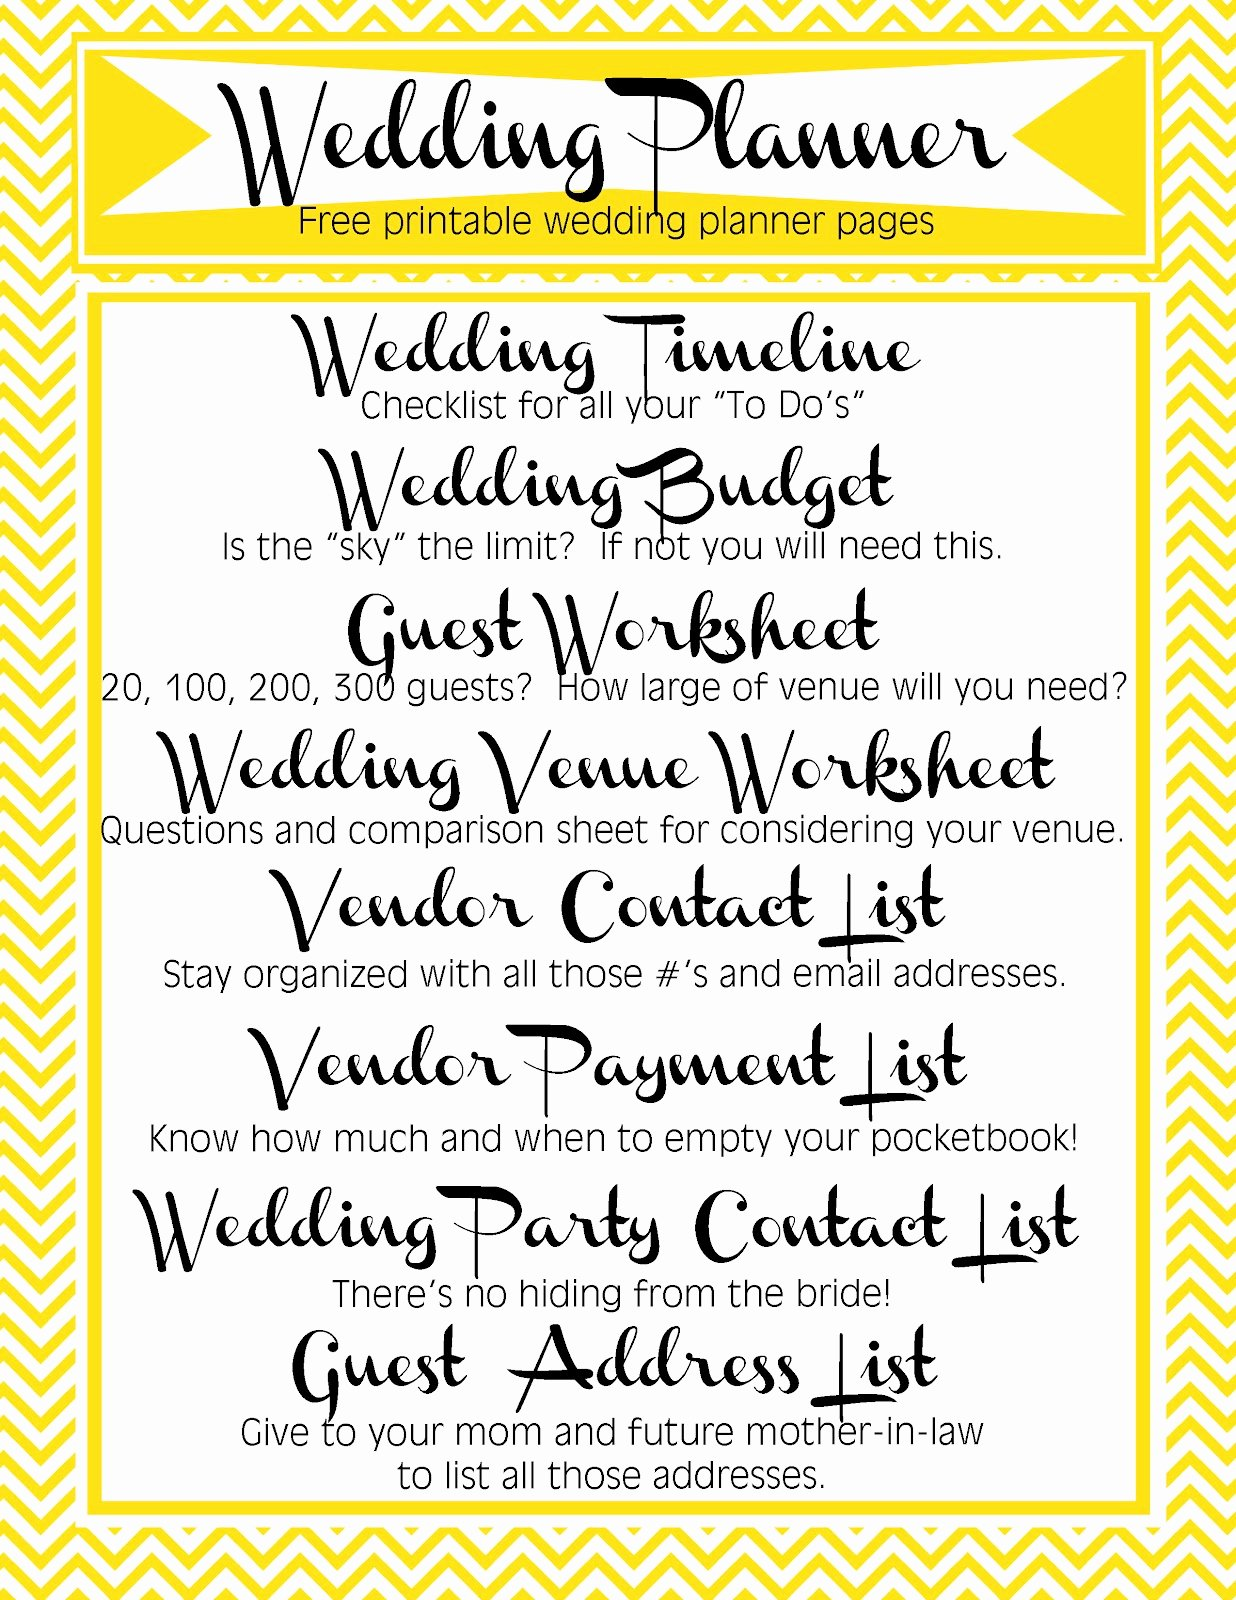 Wedding Vendor List Template Beautiful Tro O Blogg the Yellow Wallpaper Quotes Marriage